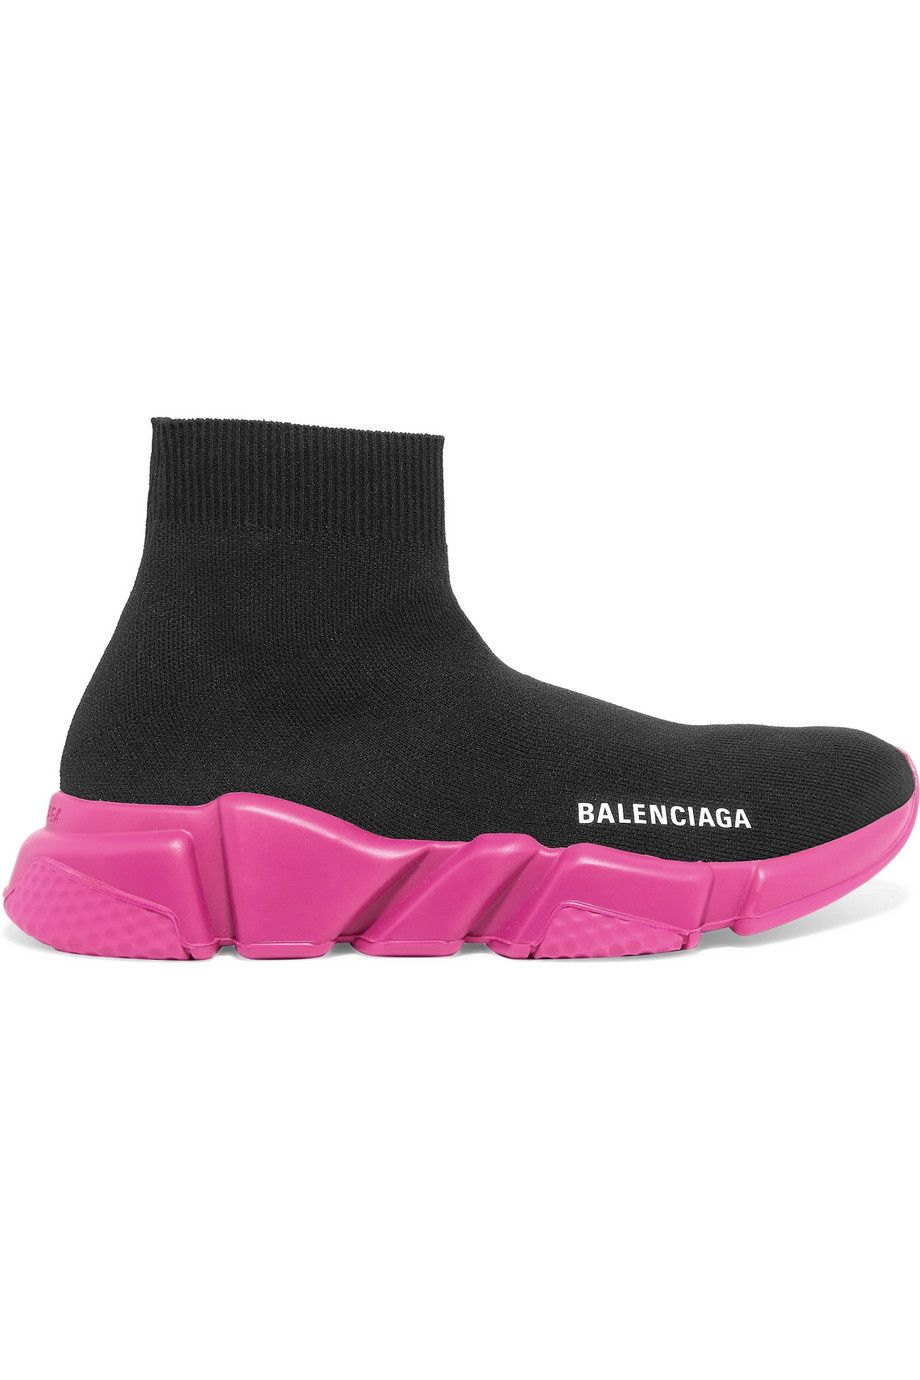 Speed Stretch-Knit High-Top Sneakers Balenciaga net-a-porter.com $770.00 SHOP NOW A bold take on comfort, Balenciaga's stretch-knit high-top sneakers have hit cult status among the fashion-insider set.